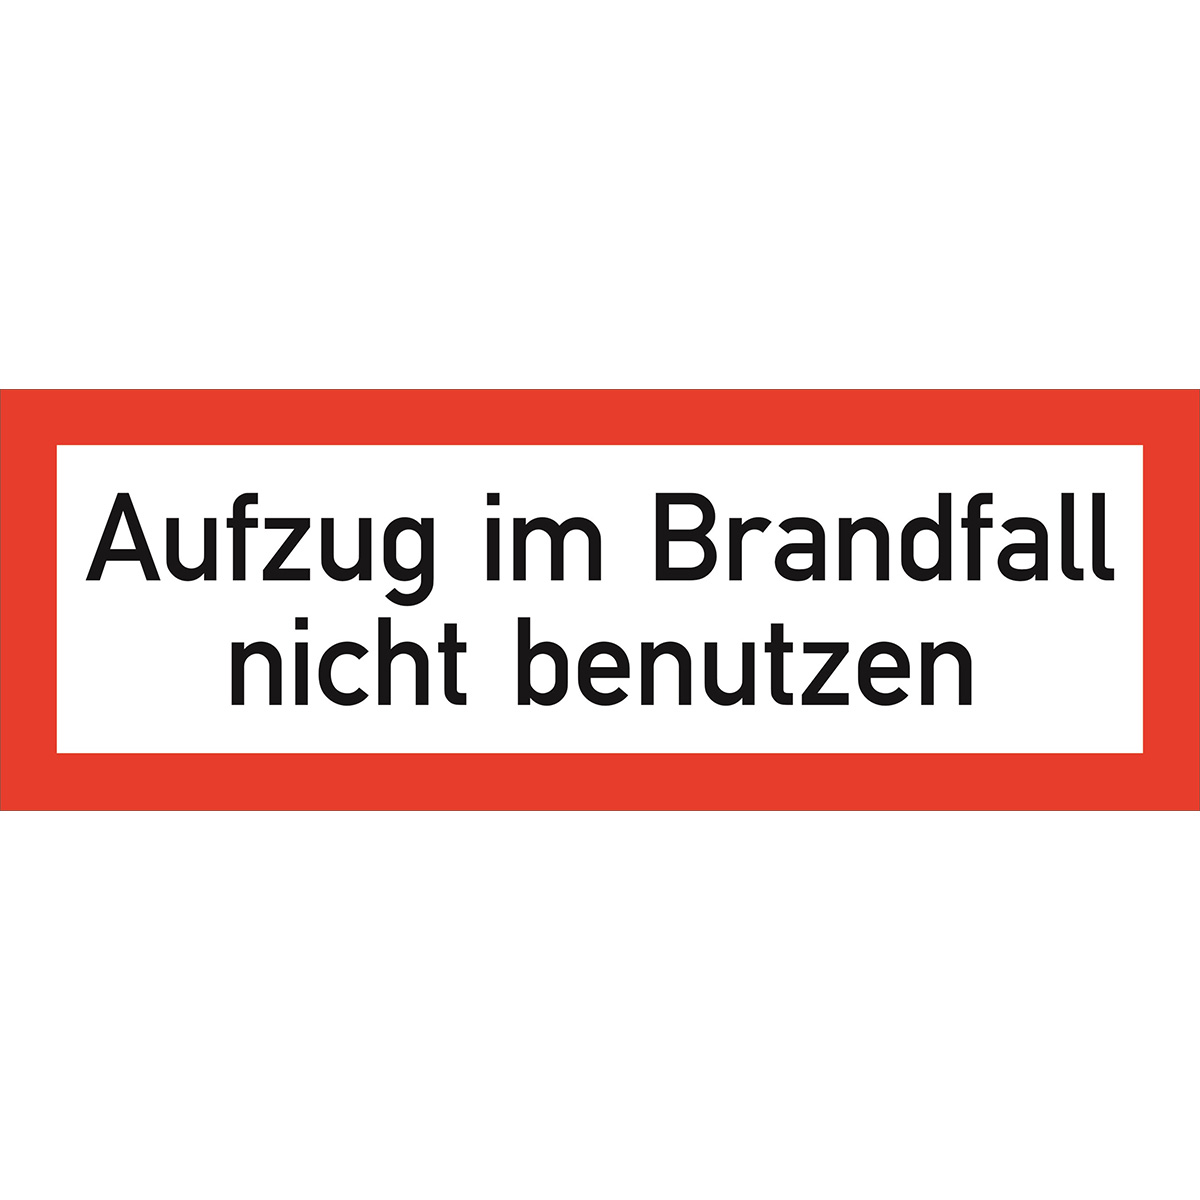 aufzug im brandfall nicht benutzen safetyshop24 onlineshop f r brandschutz und sicherheit. Black Bedroom Furniture Sets. Home Design Ideas